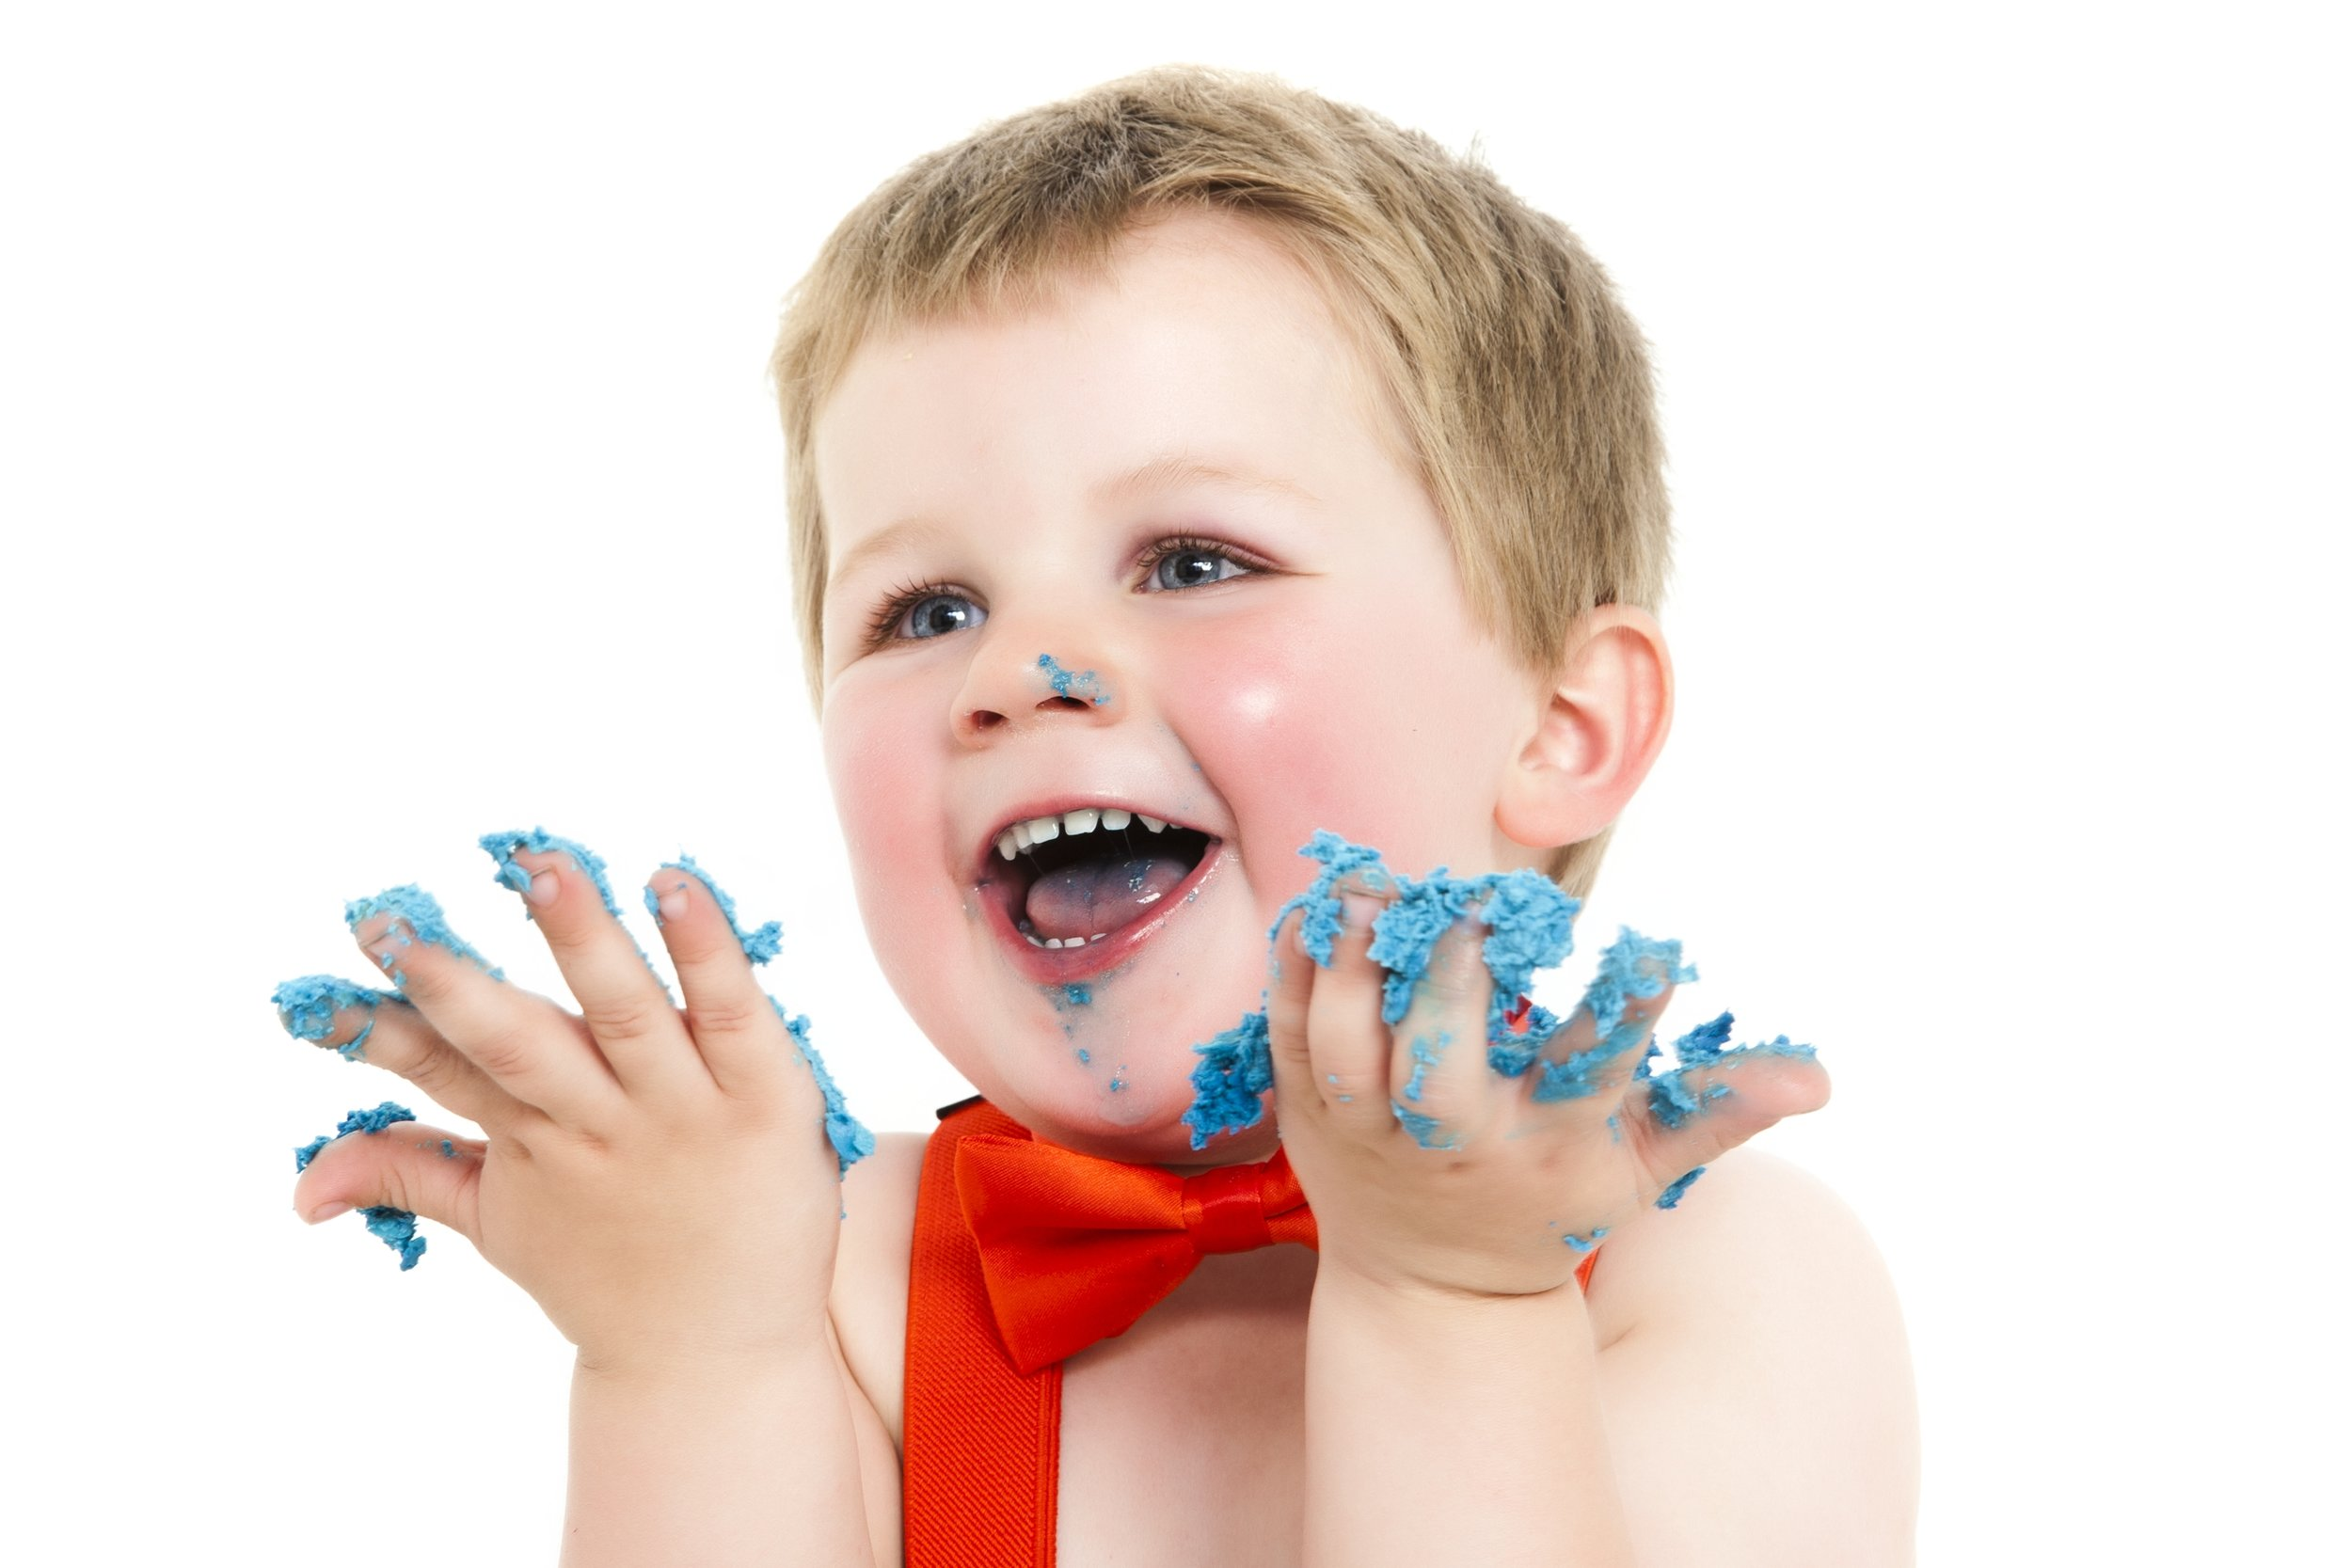 photography-studio-leicester-photo-shoot-photographer-baby-cakesmash-cake-smash-birthday-first-zigzag-zig-zag-family-clarendon-park-photographer-queens-road-ideas-props-icing.jpg